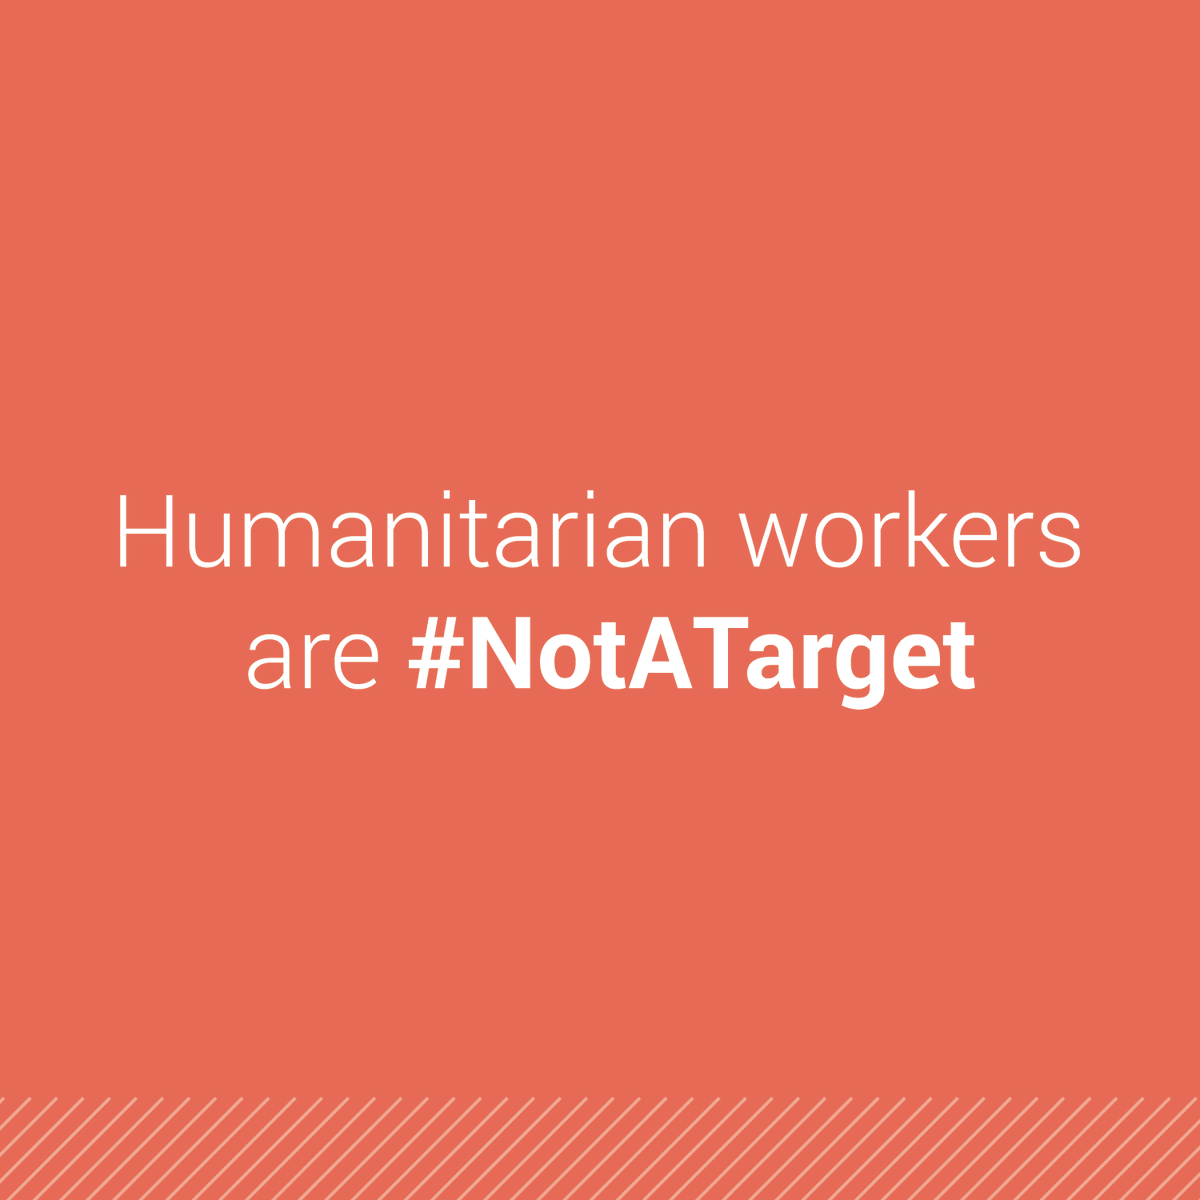 Targeting humanitarian workers is a violation of international humanitarian law, said @UNReliefChief following the killing of an aid worker in South Sudan.  His death brings the number of humanitarians killed in the country to 120 since 2013.  https://t.co/8ruxox2vRI #NotATarget https://t.co/nGQQTZgiYF